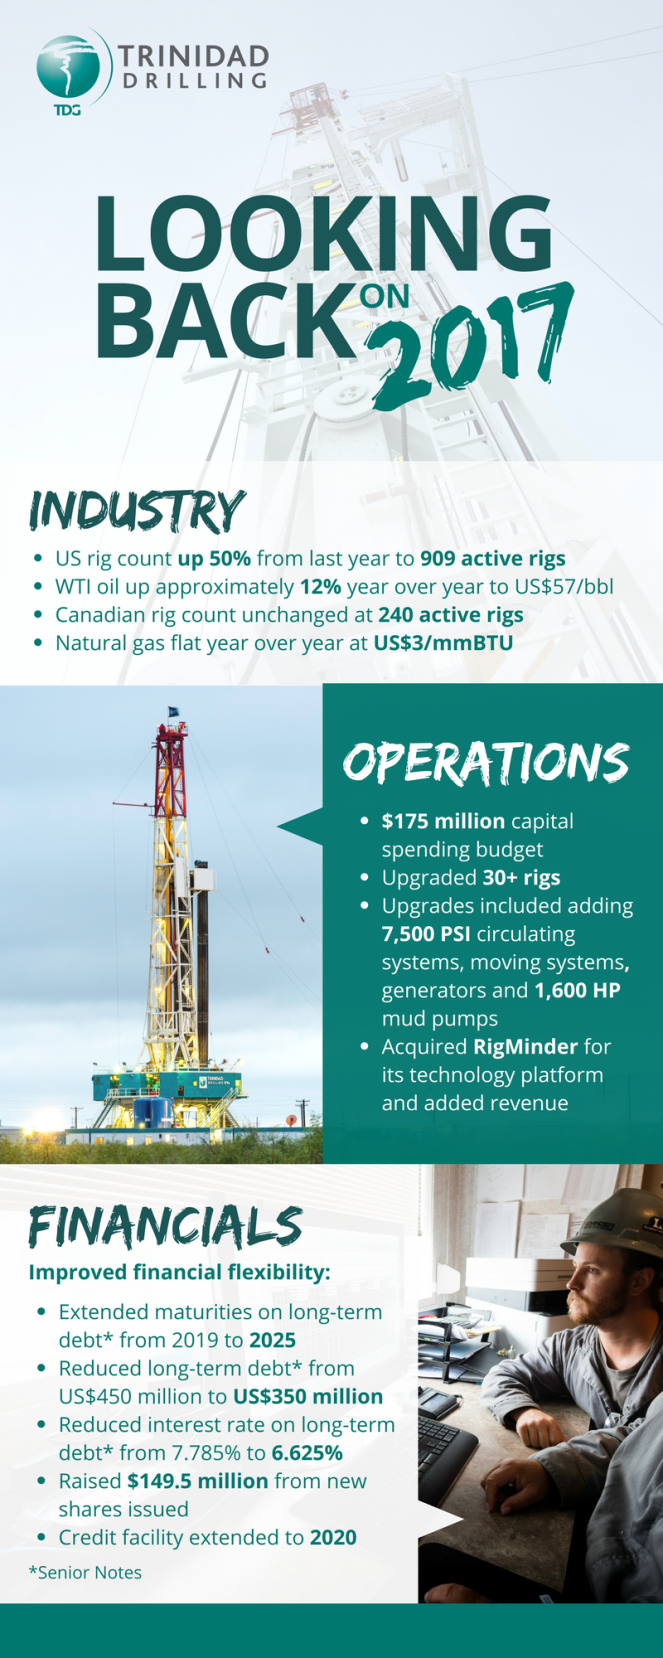 Looking back on 2017 at Trinidad Drilling